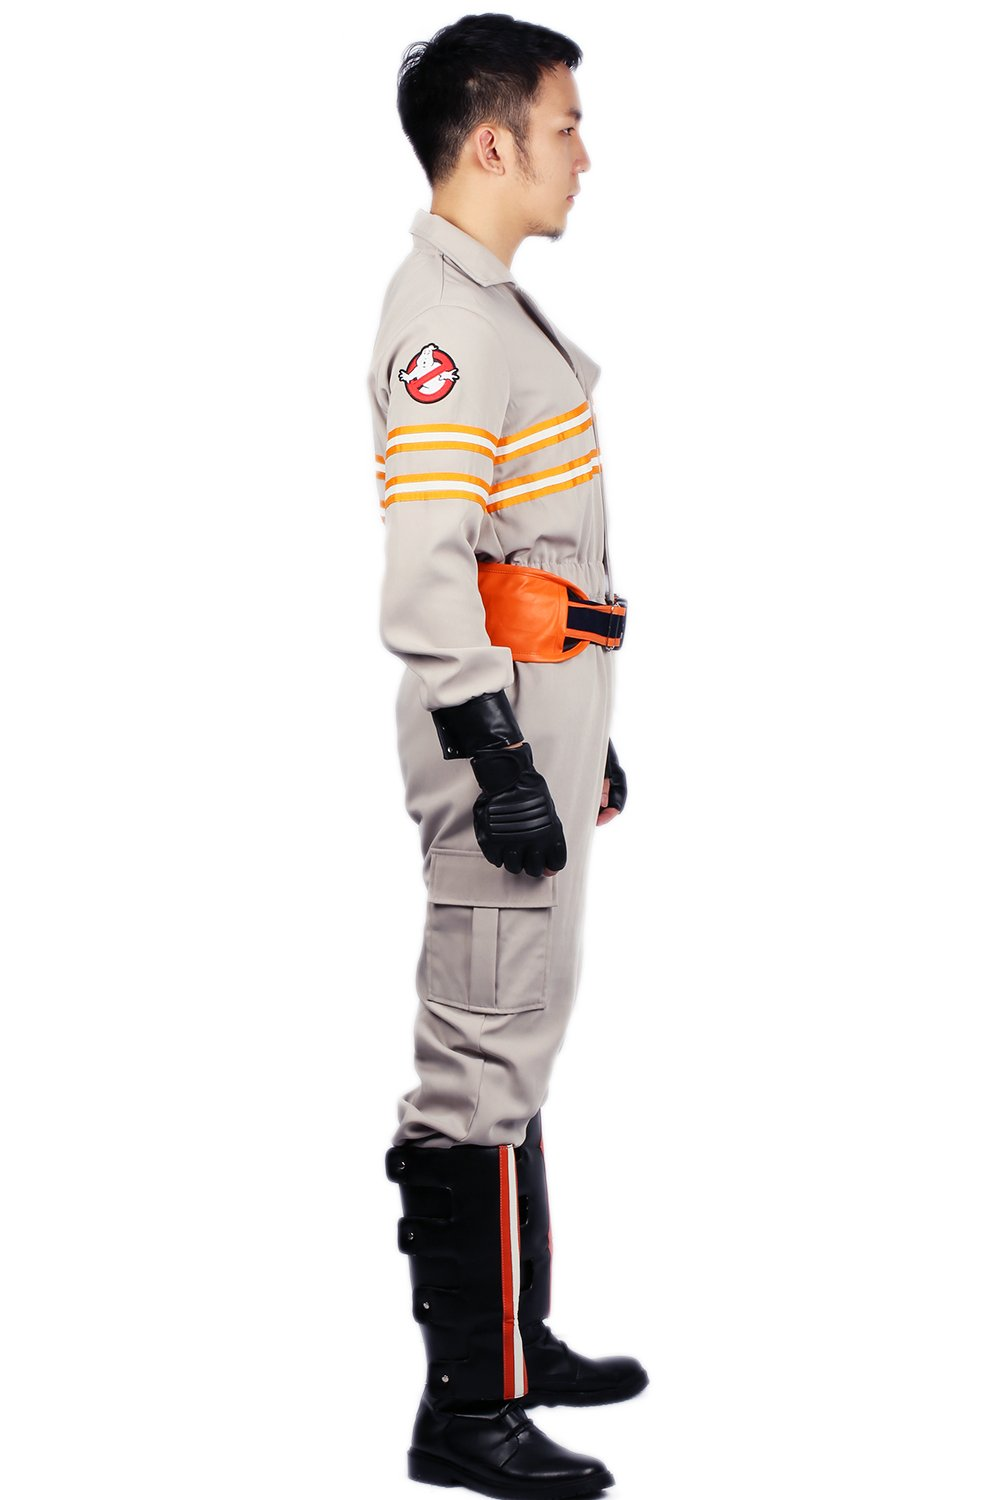 Ghostbusters Costume Deluxe Jumpsuit Embroidery Logo Cotton Halloween Cosplay Xcoser M by xcoser (Image #2)